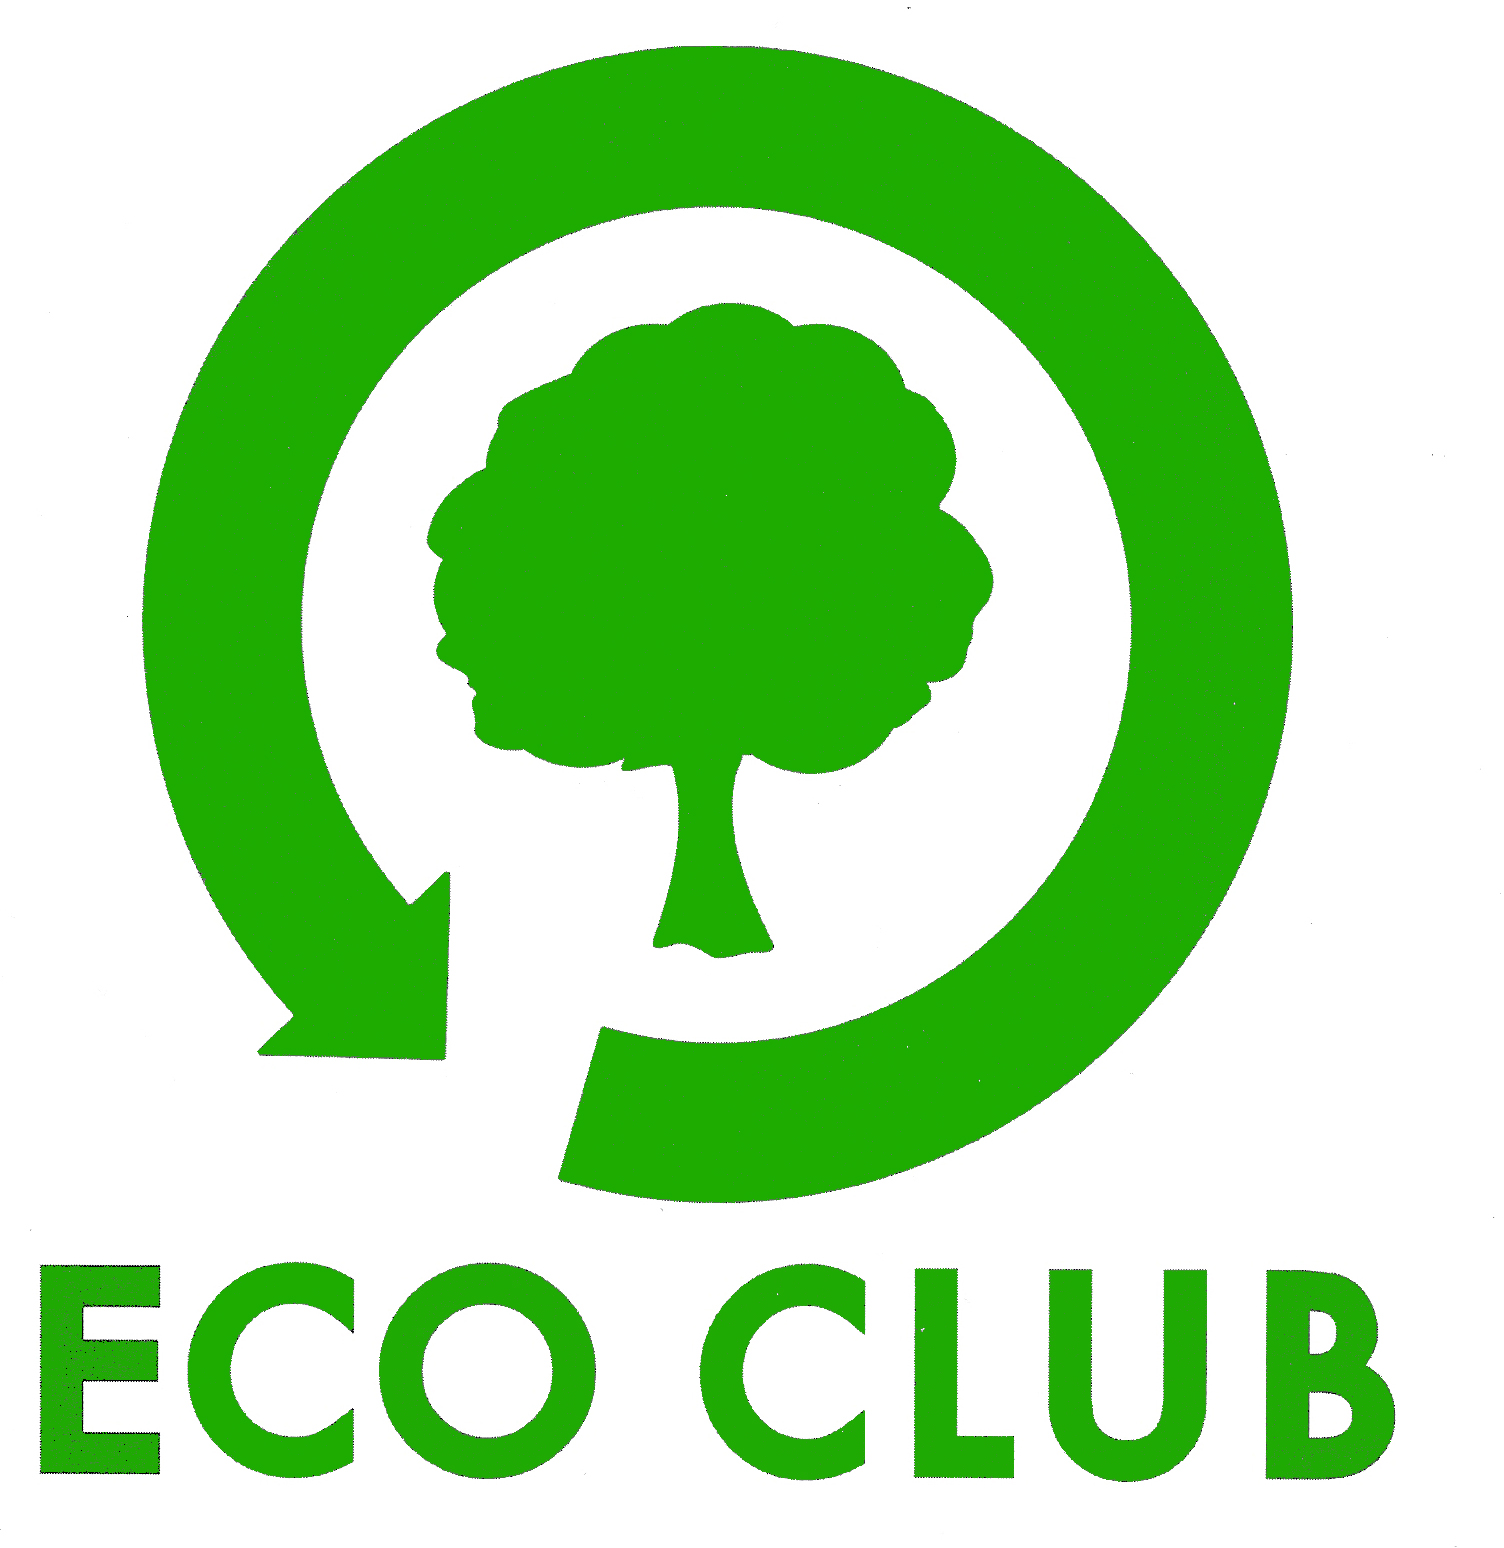 eco club The eco club also empowers students to explore environmental concepts and actions beyond the confines of a syllabi or curriculumfield of environment education is.